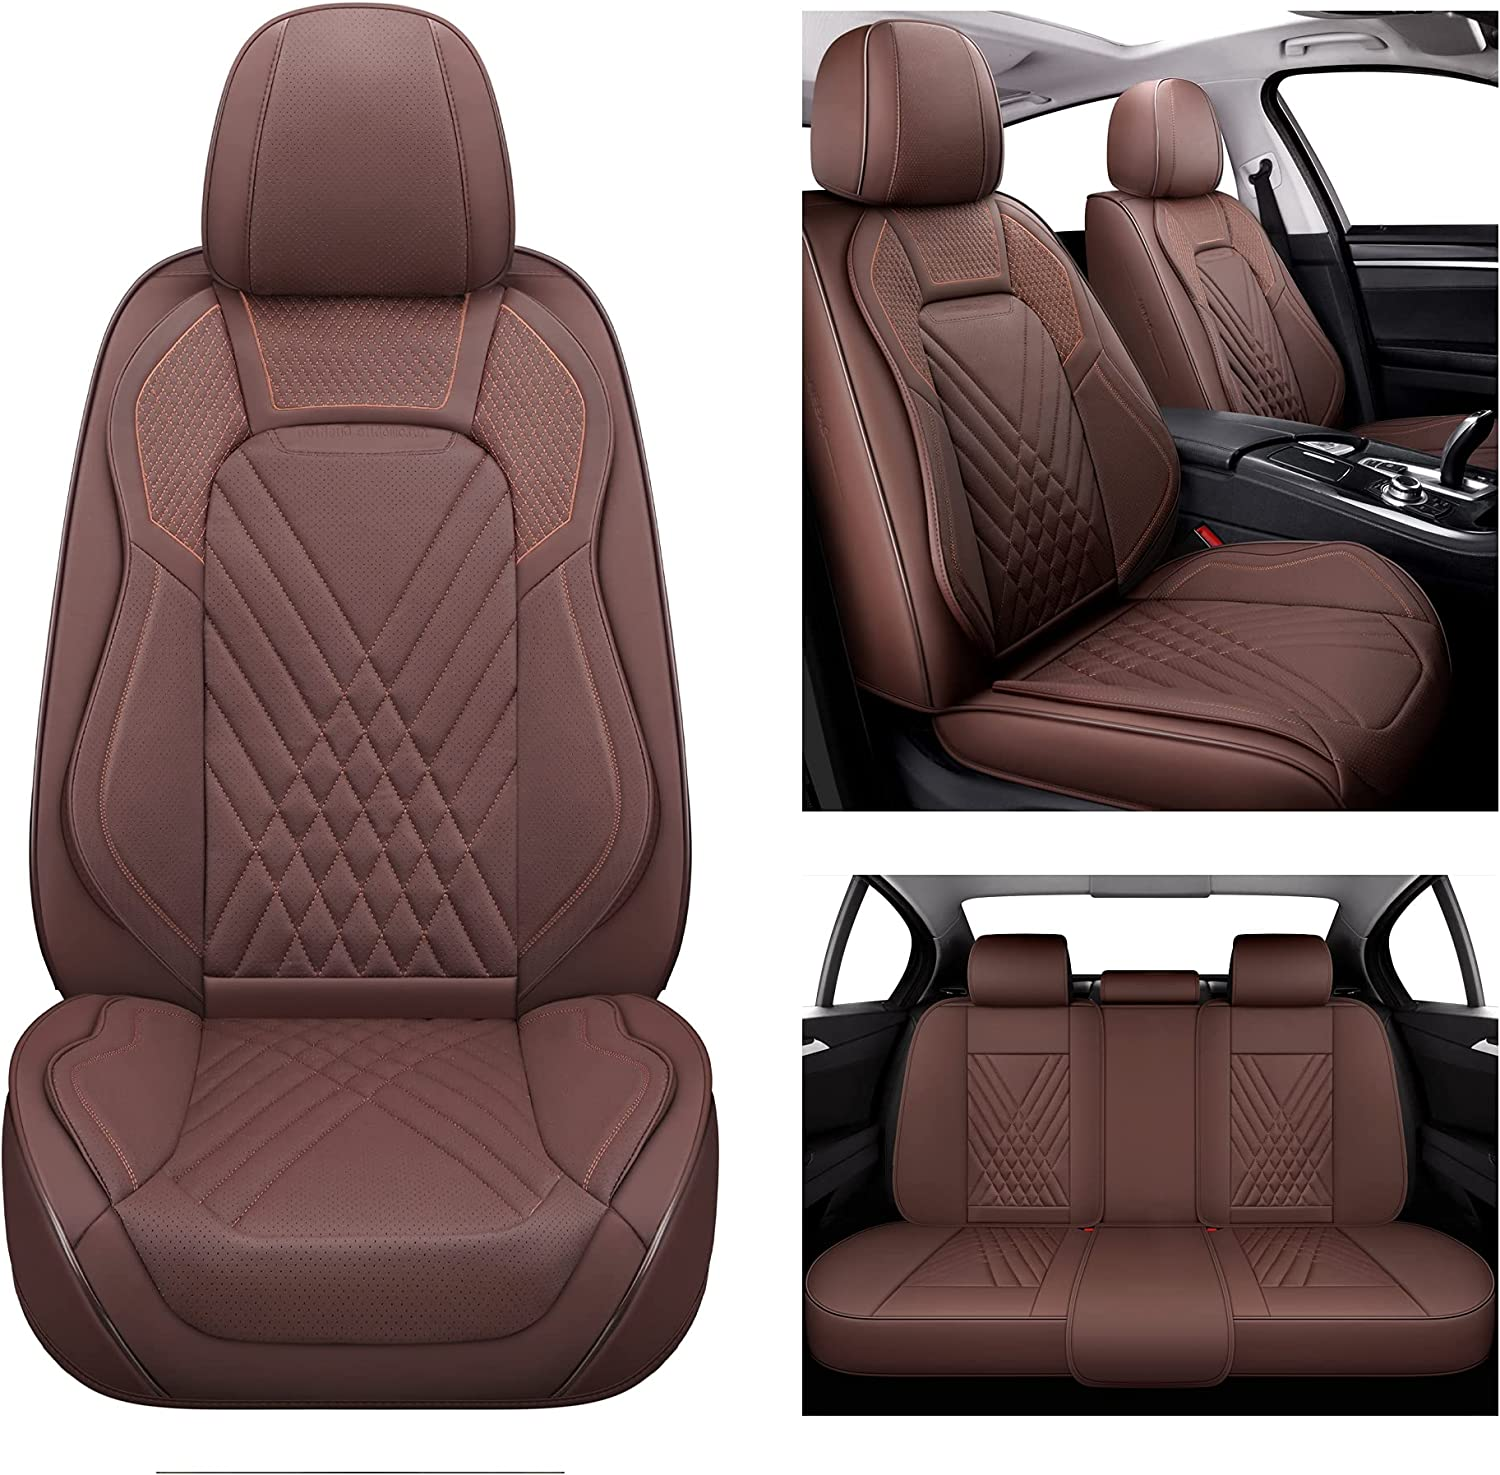 NS YOLO Special price Leather Car Seat At the price of surprise Covers Leatherette Veh Faux Automotive